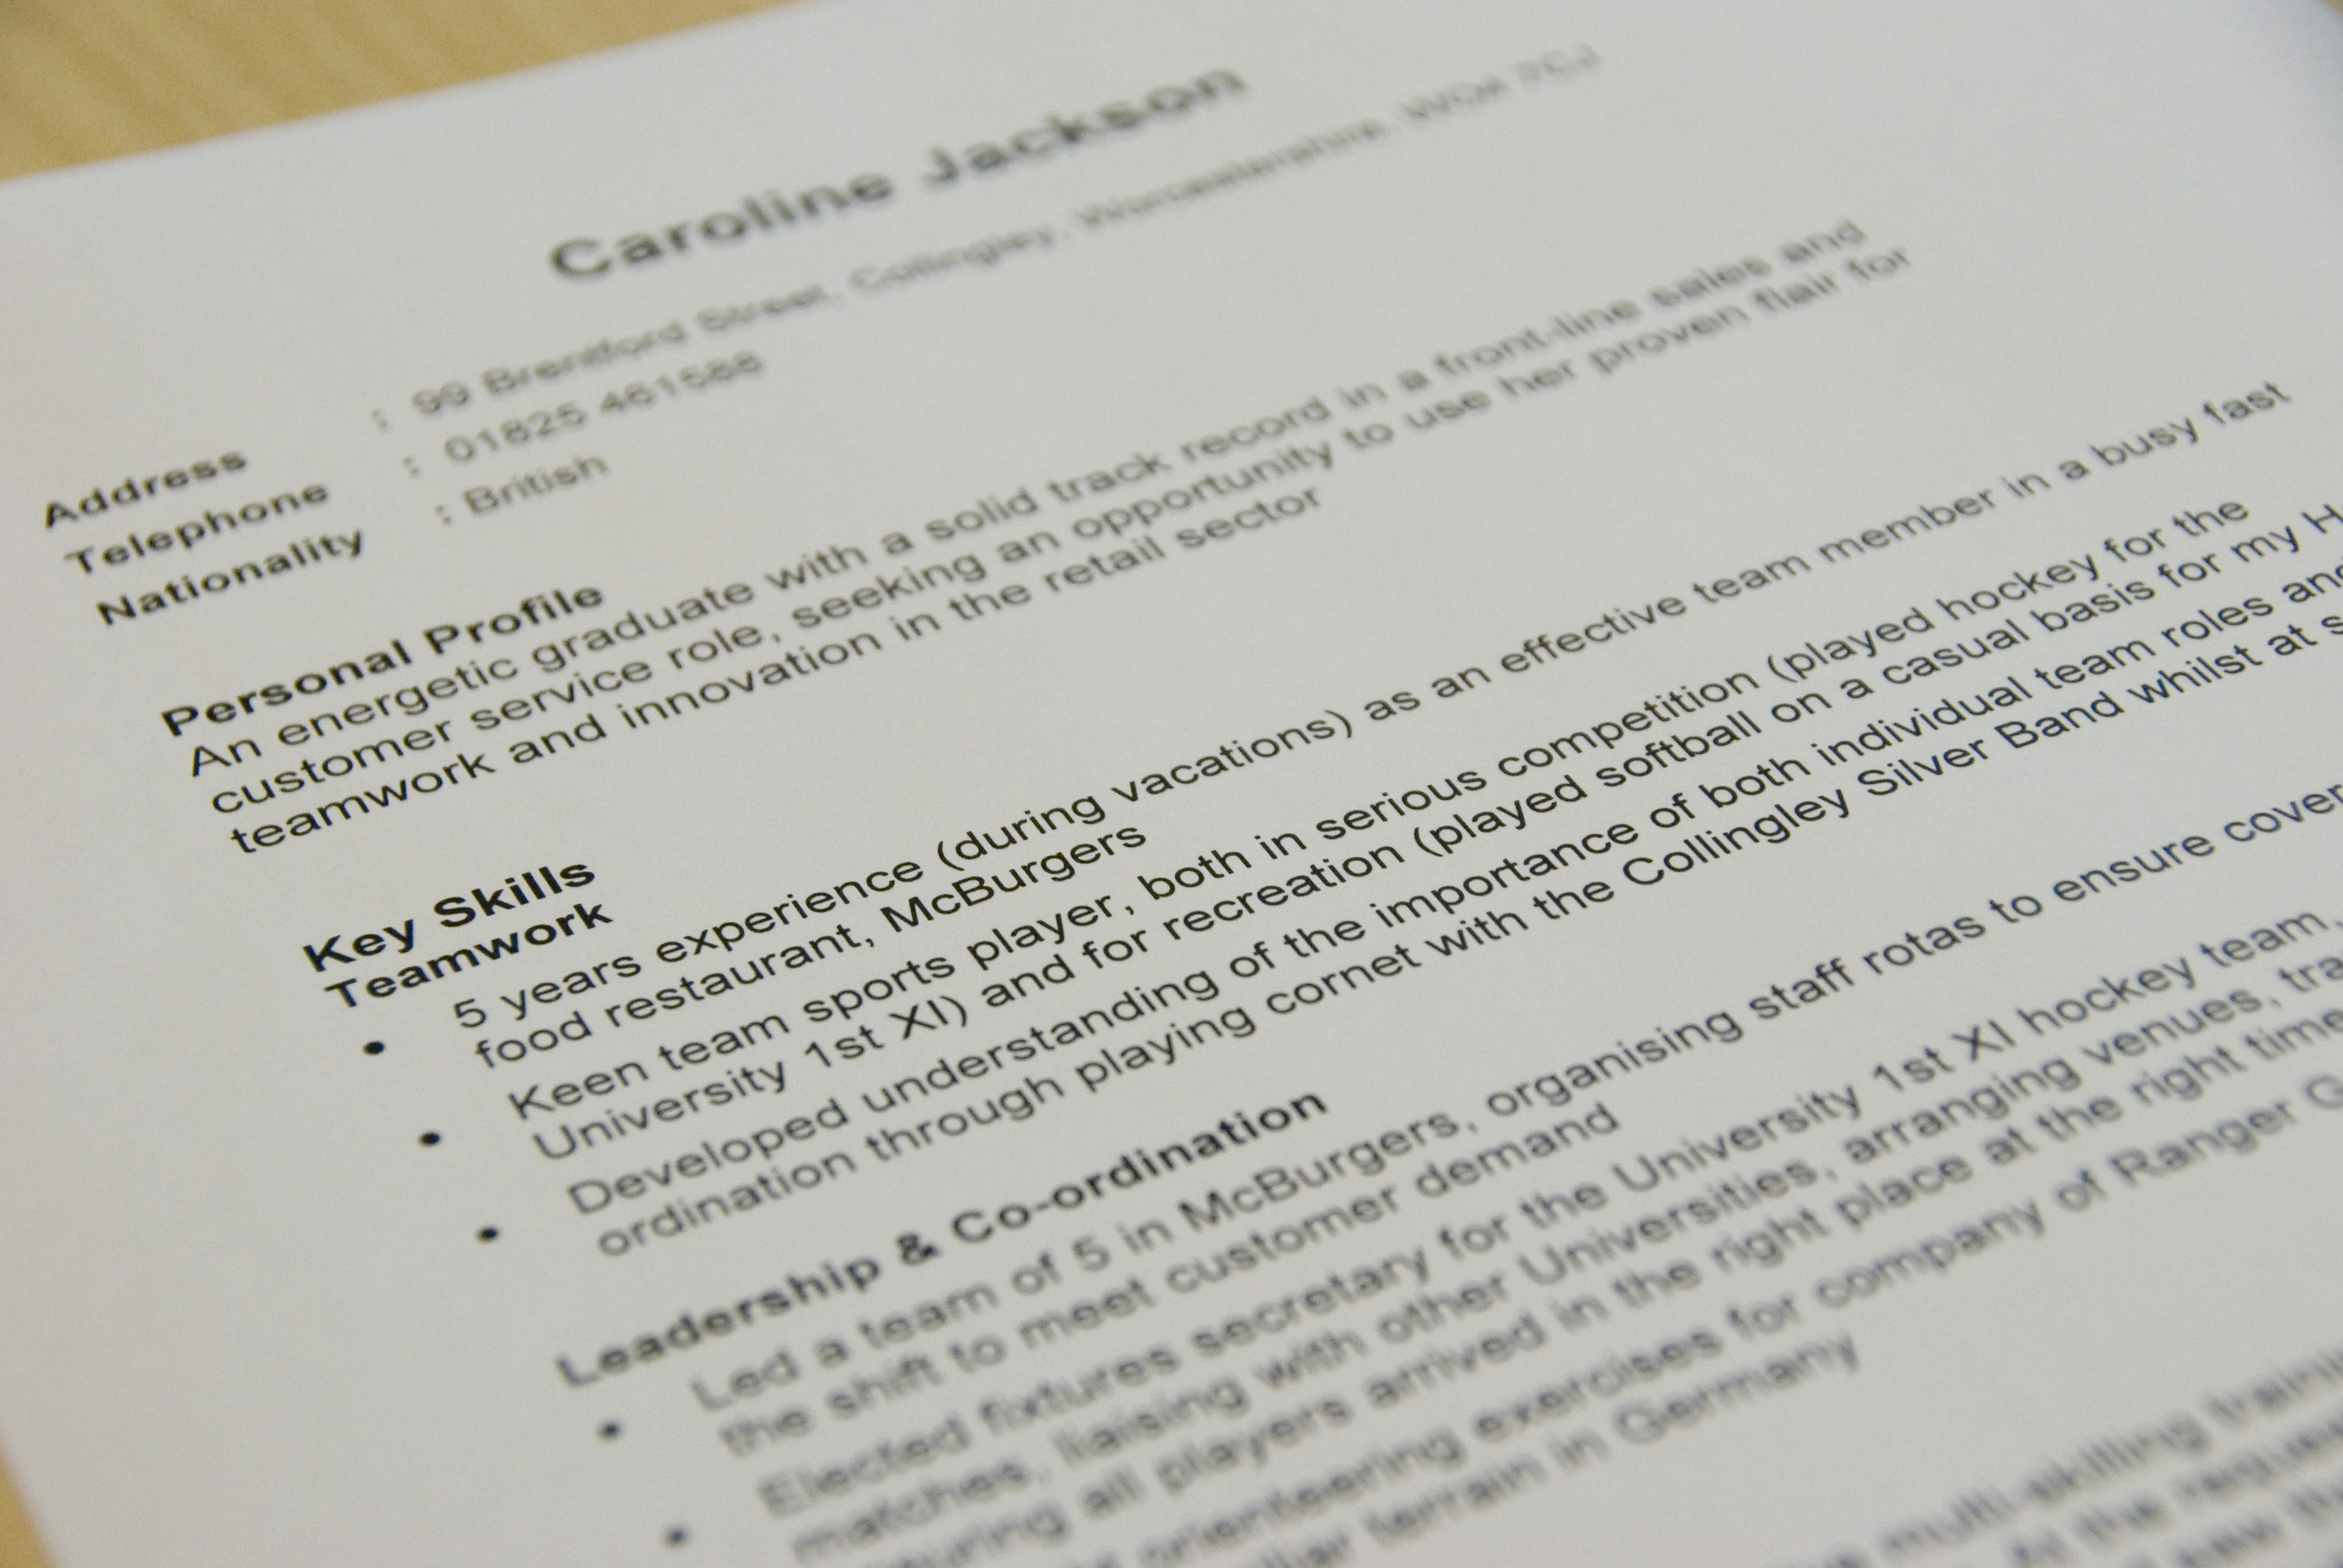 of resume for 15 year old how to make a resume for a 16 year old